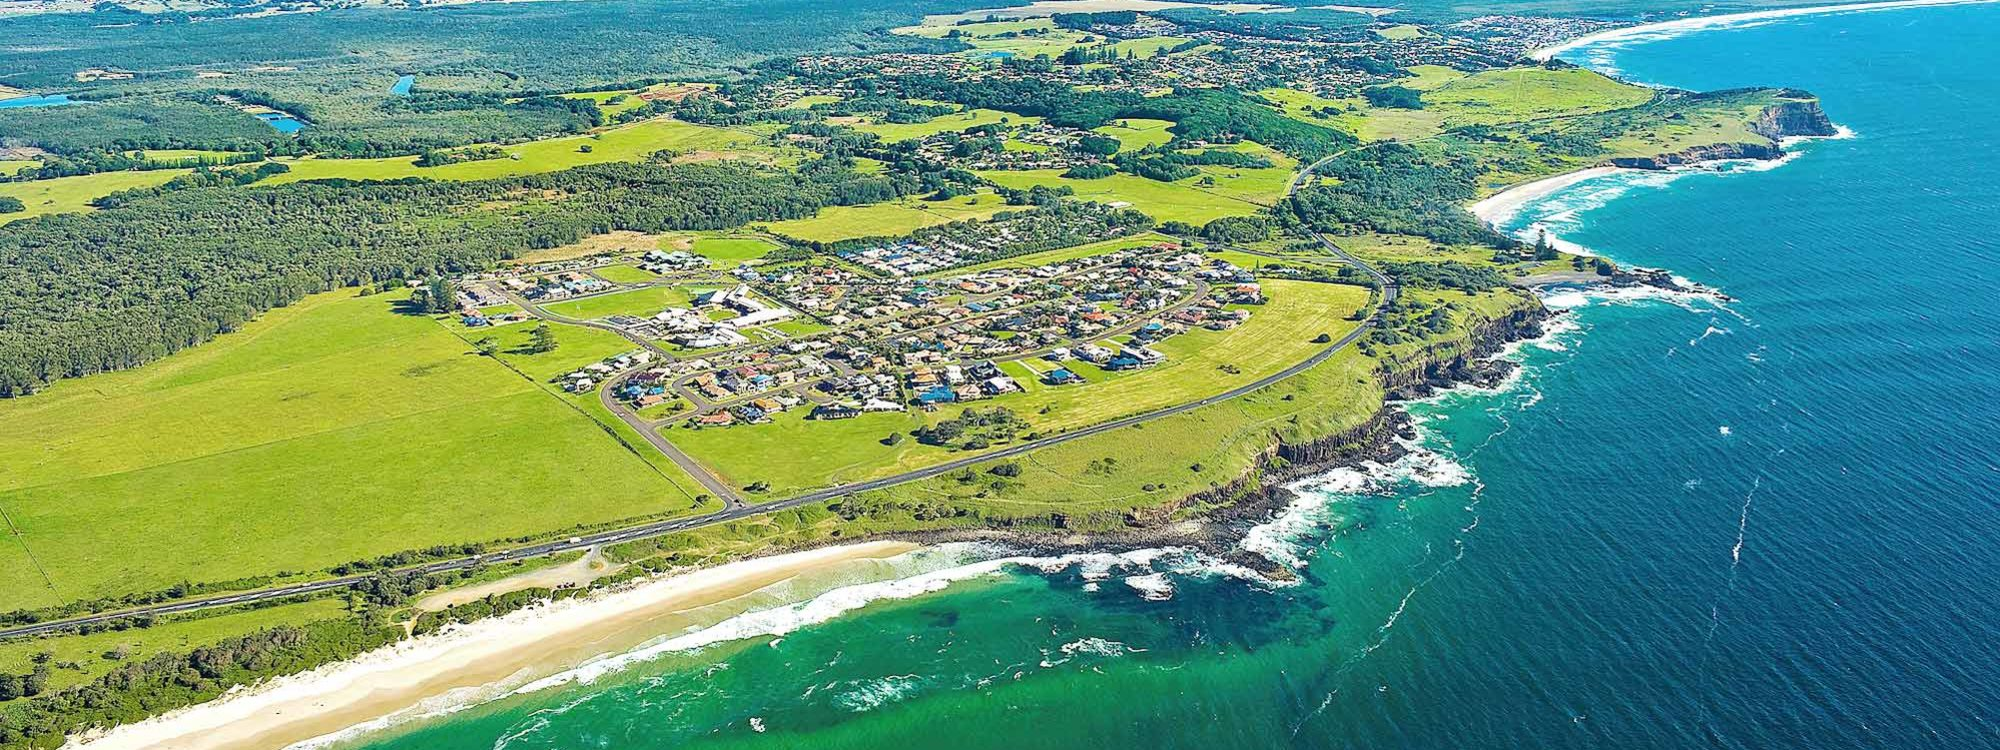 Boulders Retreat - Lennox Head - Aerial View Skennars